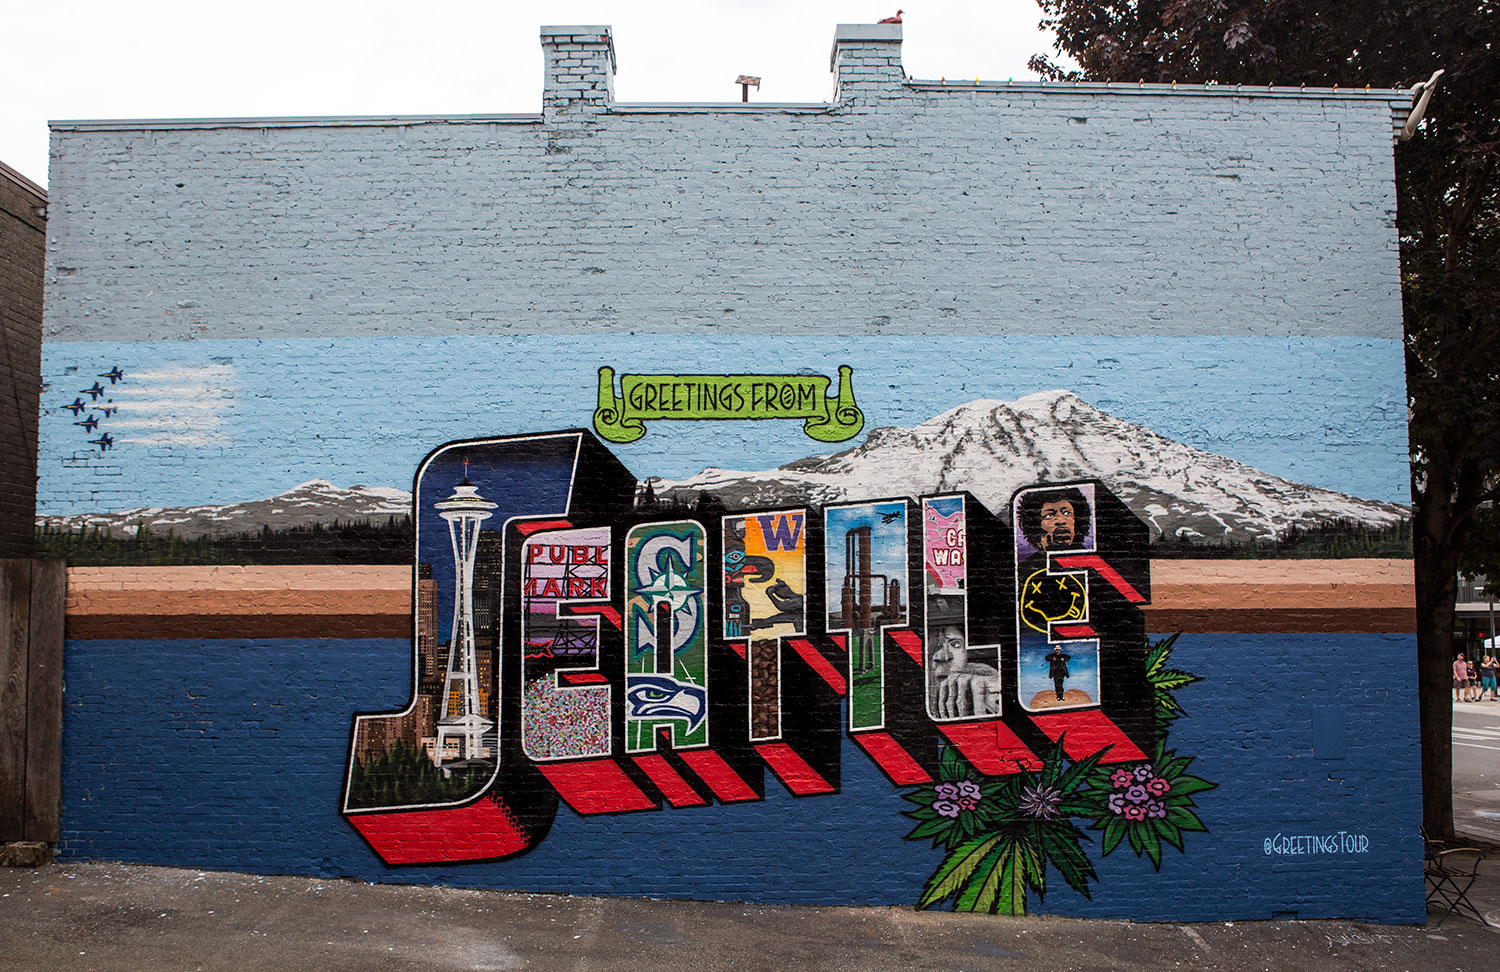 Seattle Wa Greetings Tour Us Postcard Mural Artists Traveling In Rv